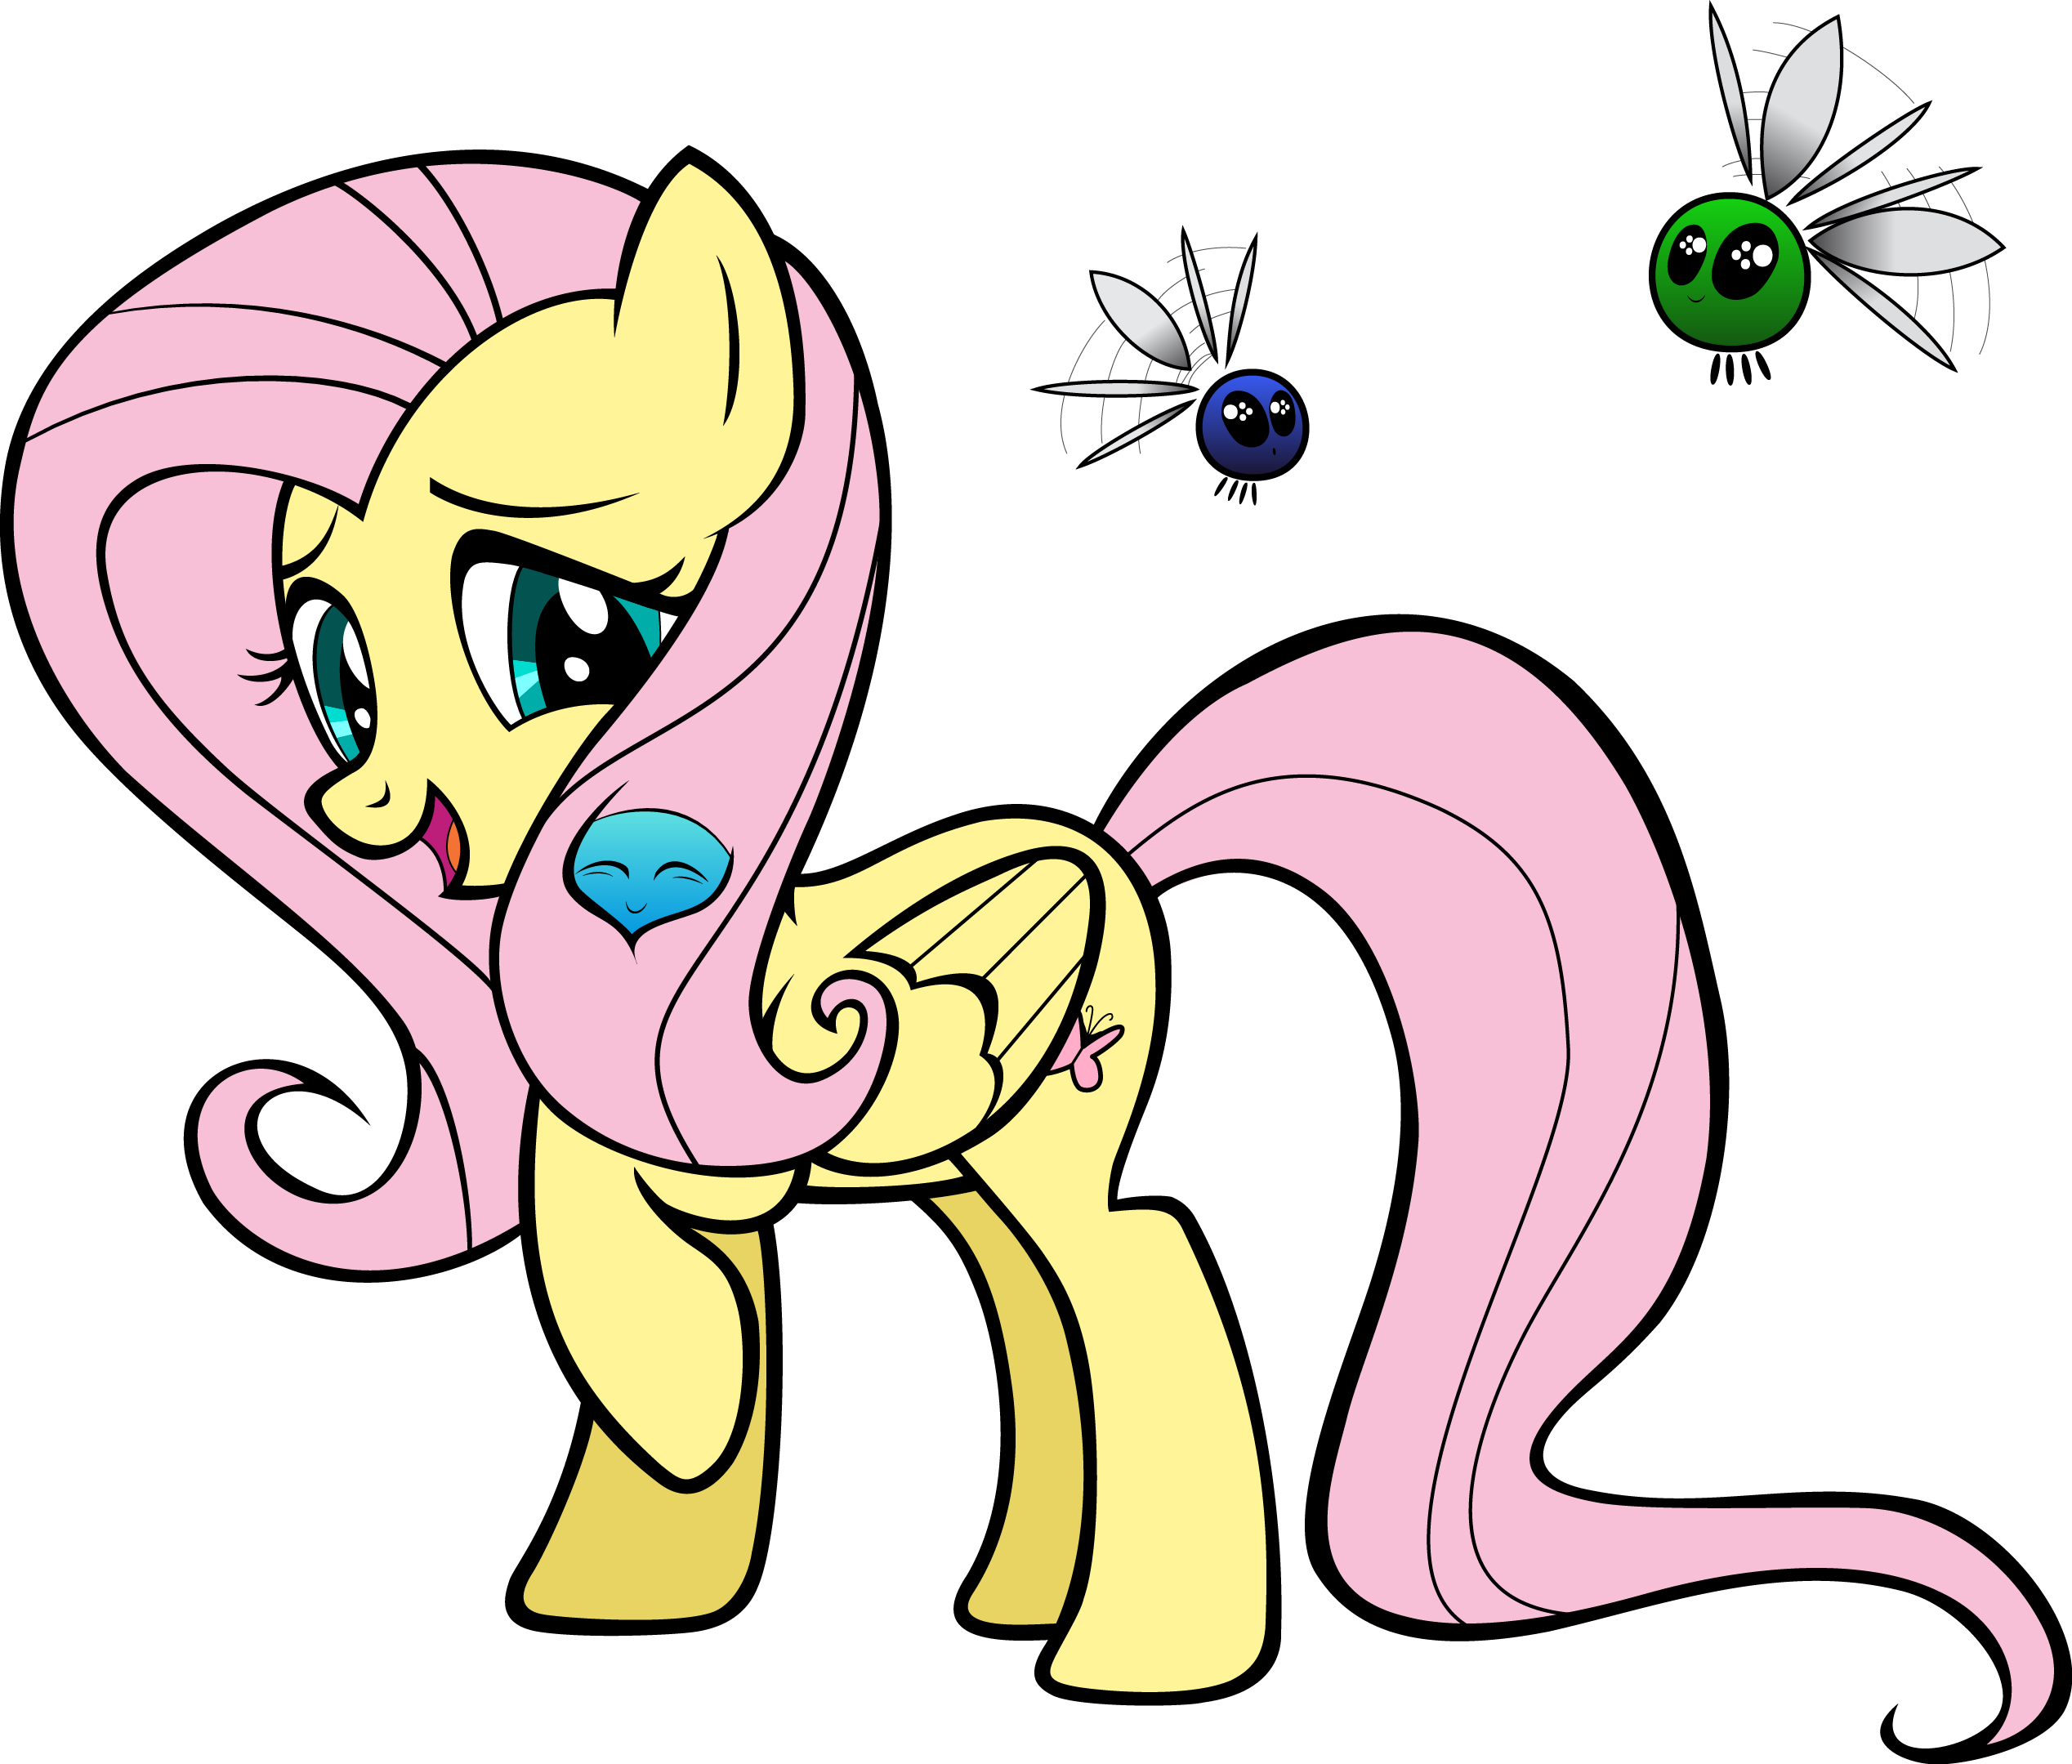 Fluttershy coloring page vector by comicalbrony on deviantart for Coloring pages of fluttershy